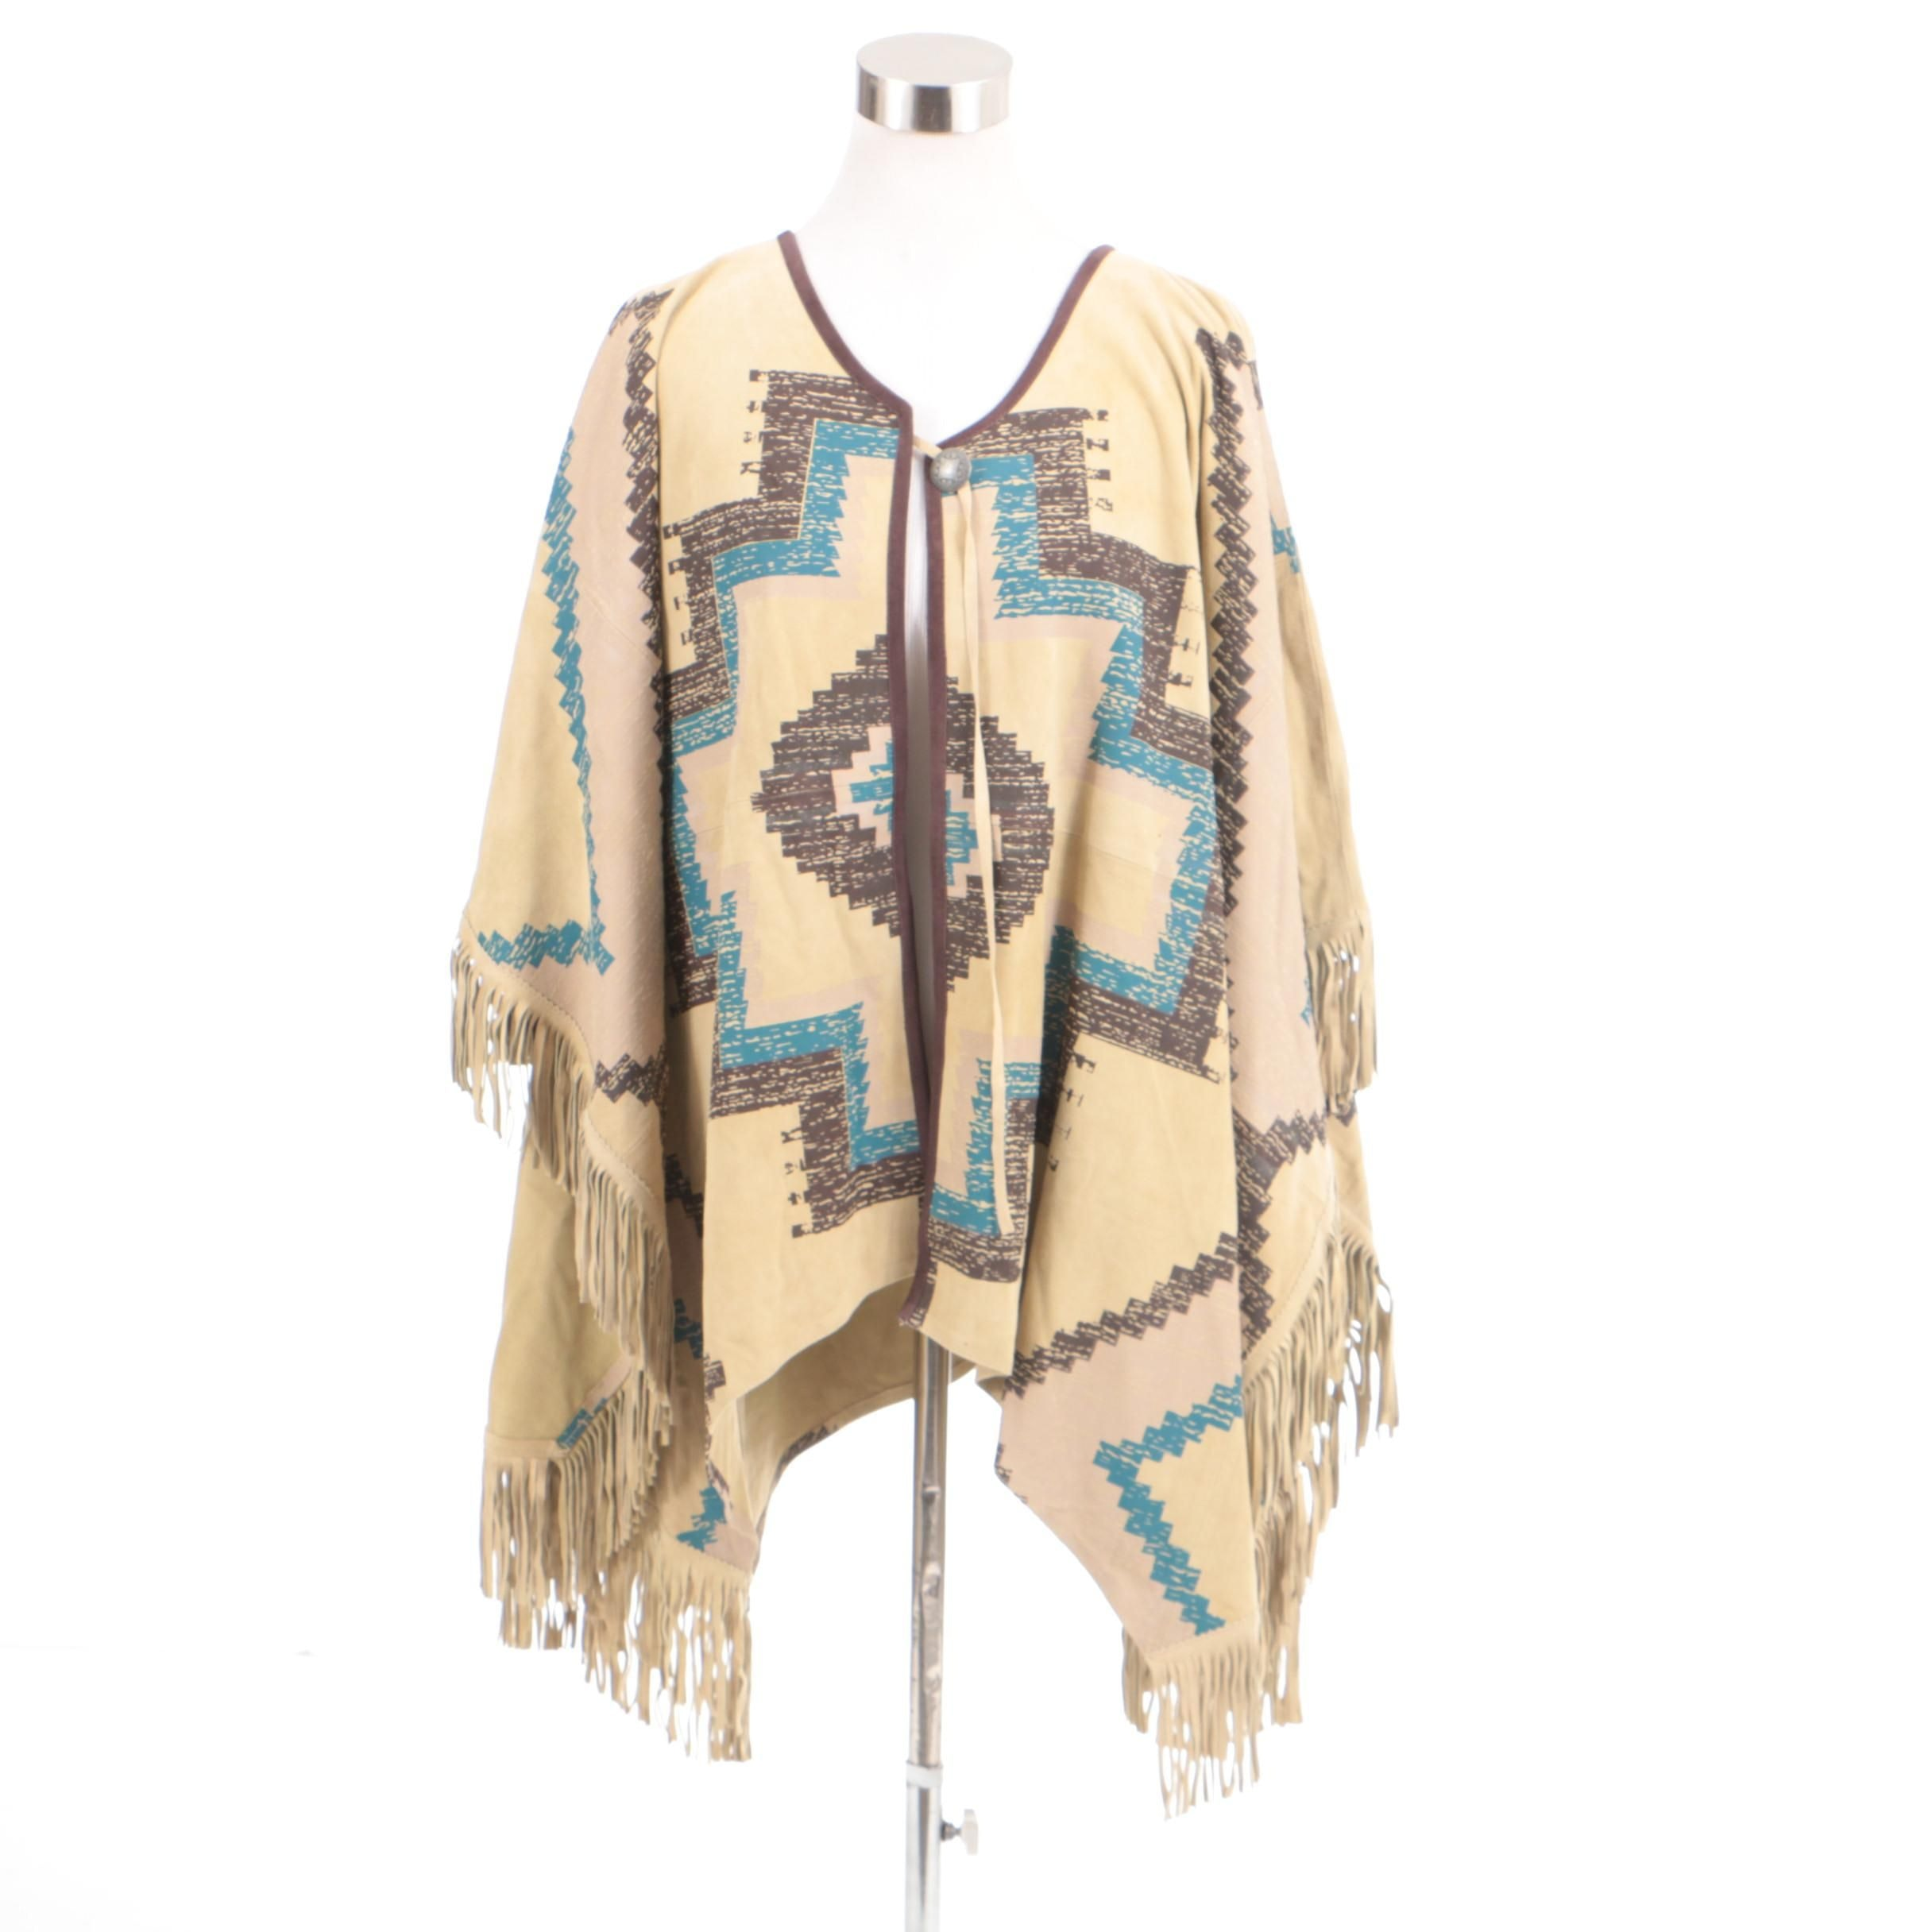 Women's Double D Ranch of Yoakum, Texas Suede Leather Poncho